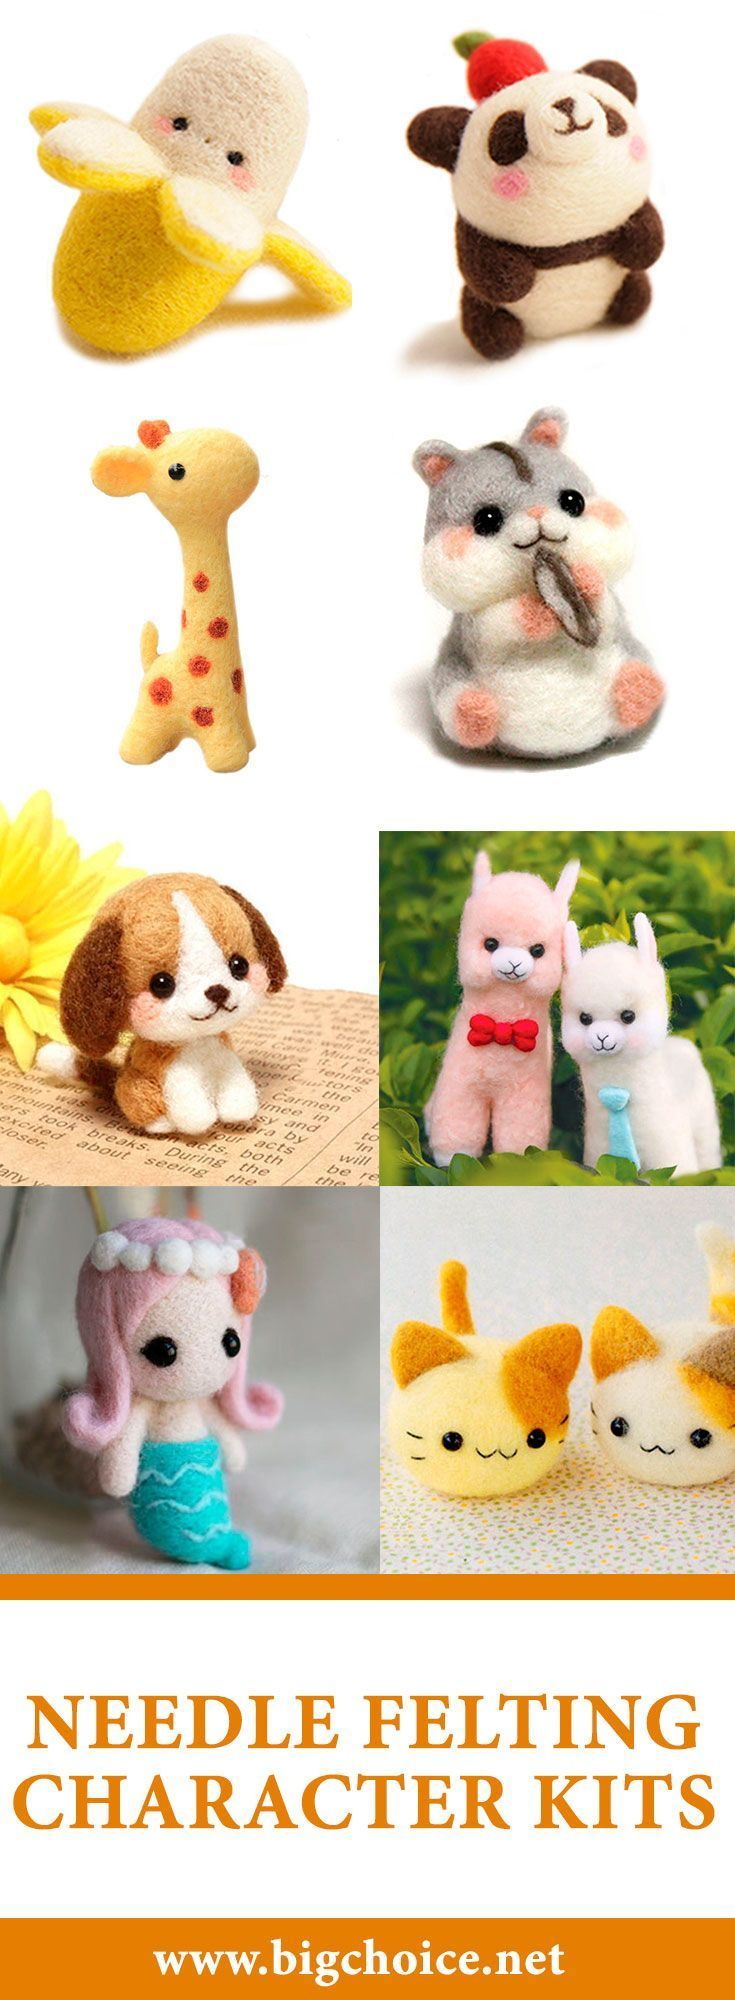 DIY cute pandas, dogs, cats, hamsters, mermaids and other characters using needle felting character kits. #diy #needle #felting #catsdiyideas -  -